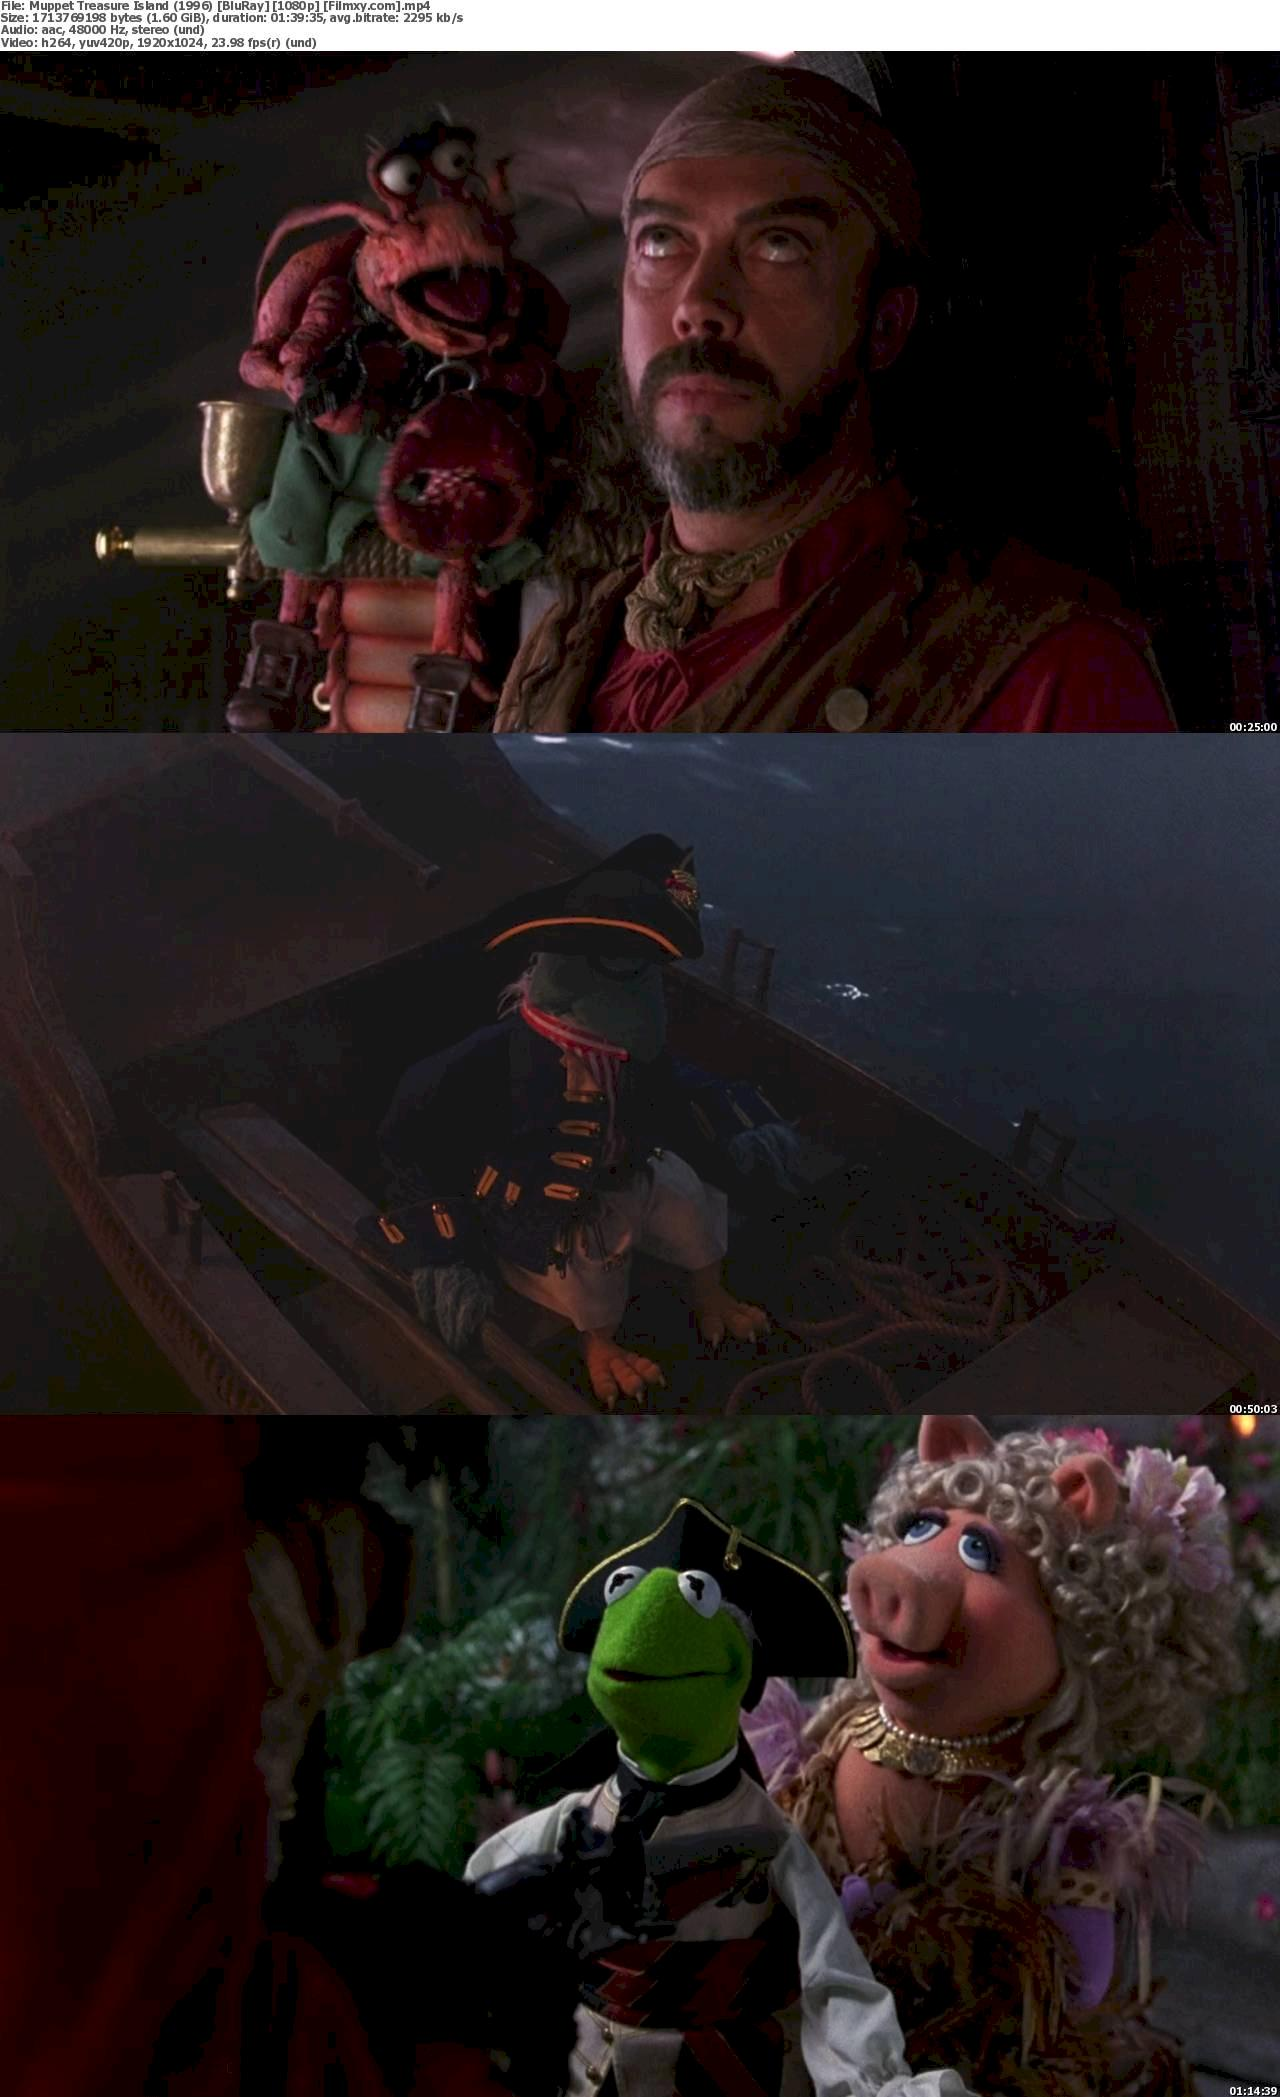 Muppet Treasure Island (1996) [720p & 1080p] Bluray Free Movie Watch Online & Download 1080p Screenshot